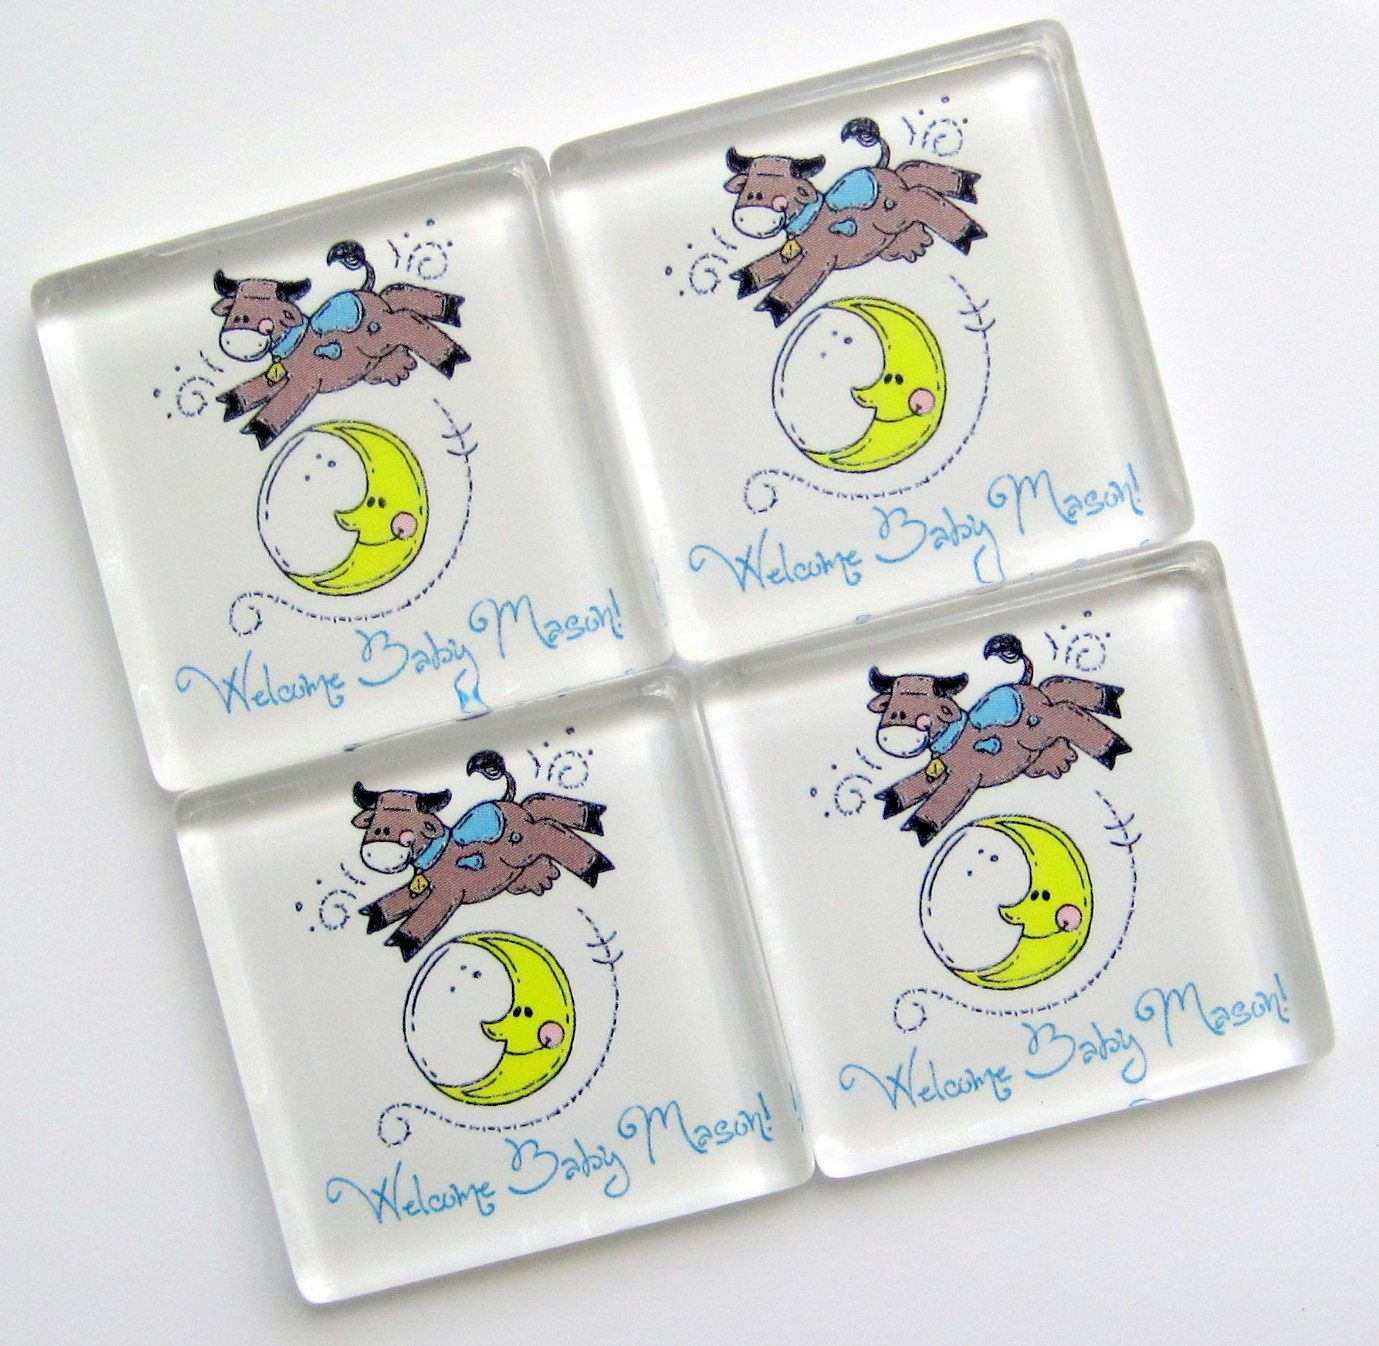 Baby shower favors the cow jumped over the moon 1 3 8 inch glass